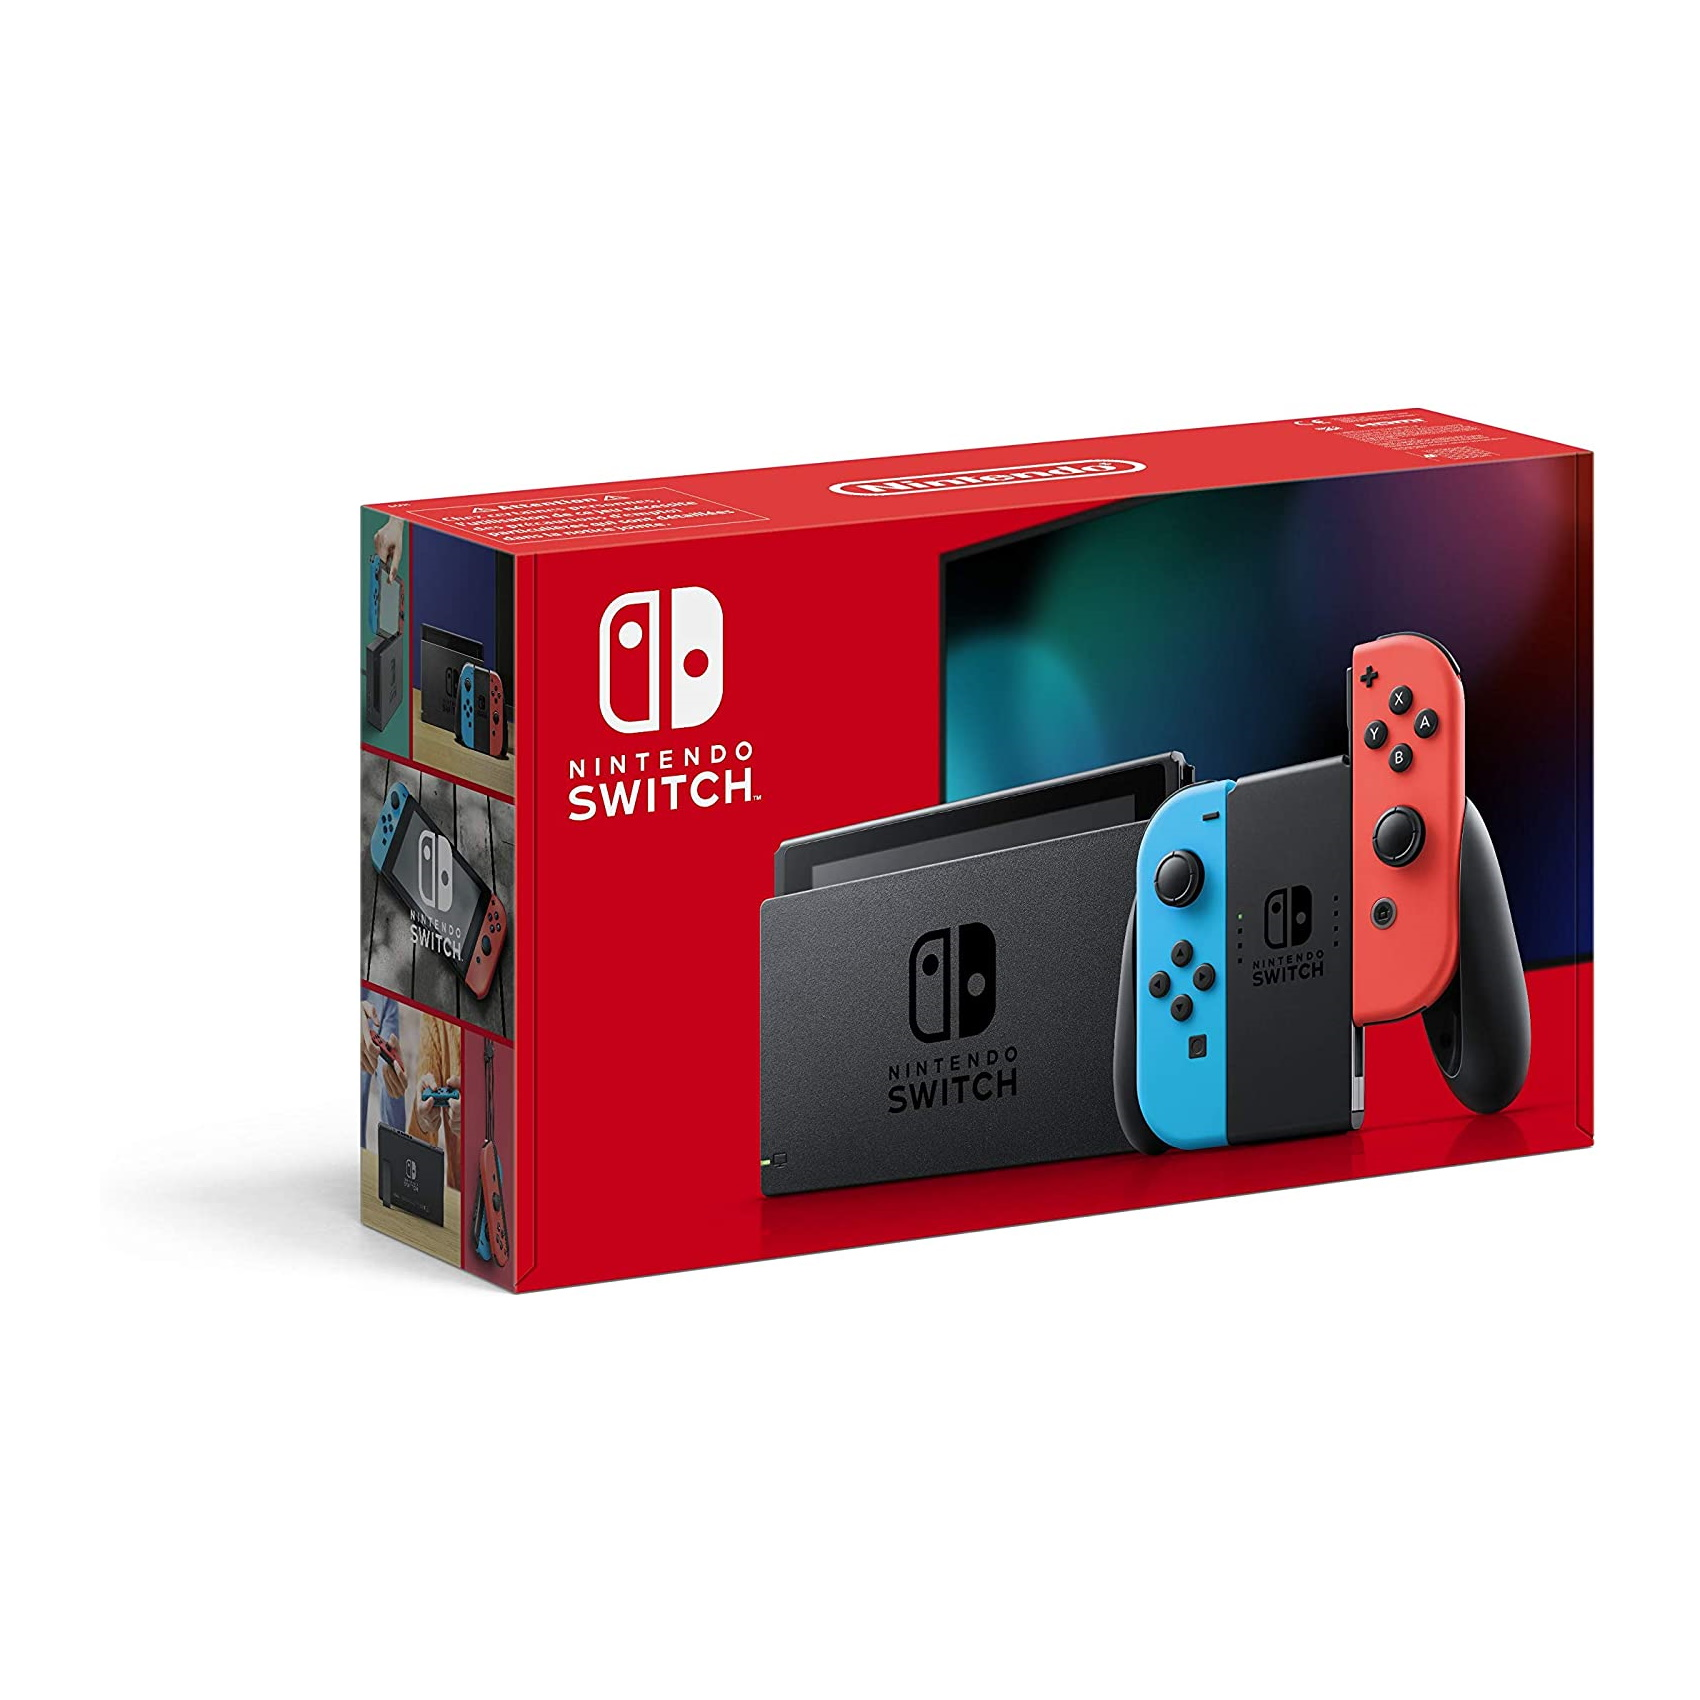 Nintendo Switch Deals Still In Stock At Amazon And Argos But